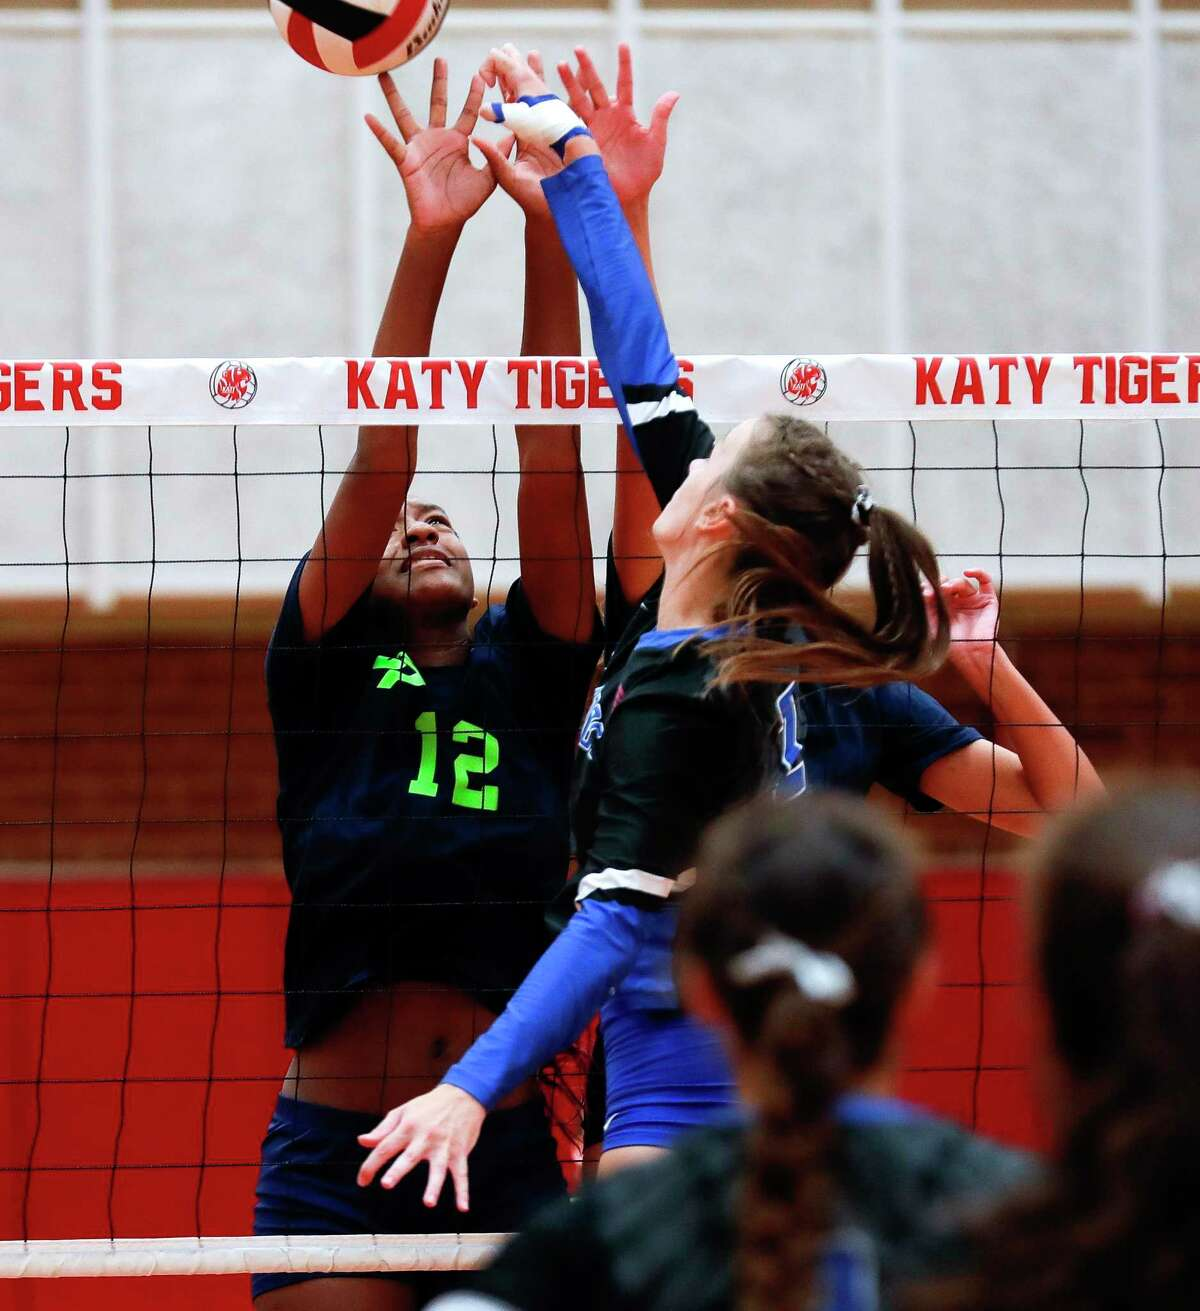 College Park's Don Yah Cosie (12) blocks the hit by Oak Ridge's Sofia Richmond (4) during a match in the Katy/Cy-Fair Tournament at Katy High School, Friday, Aug. 13, 2021, in Katy.